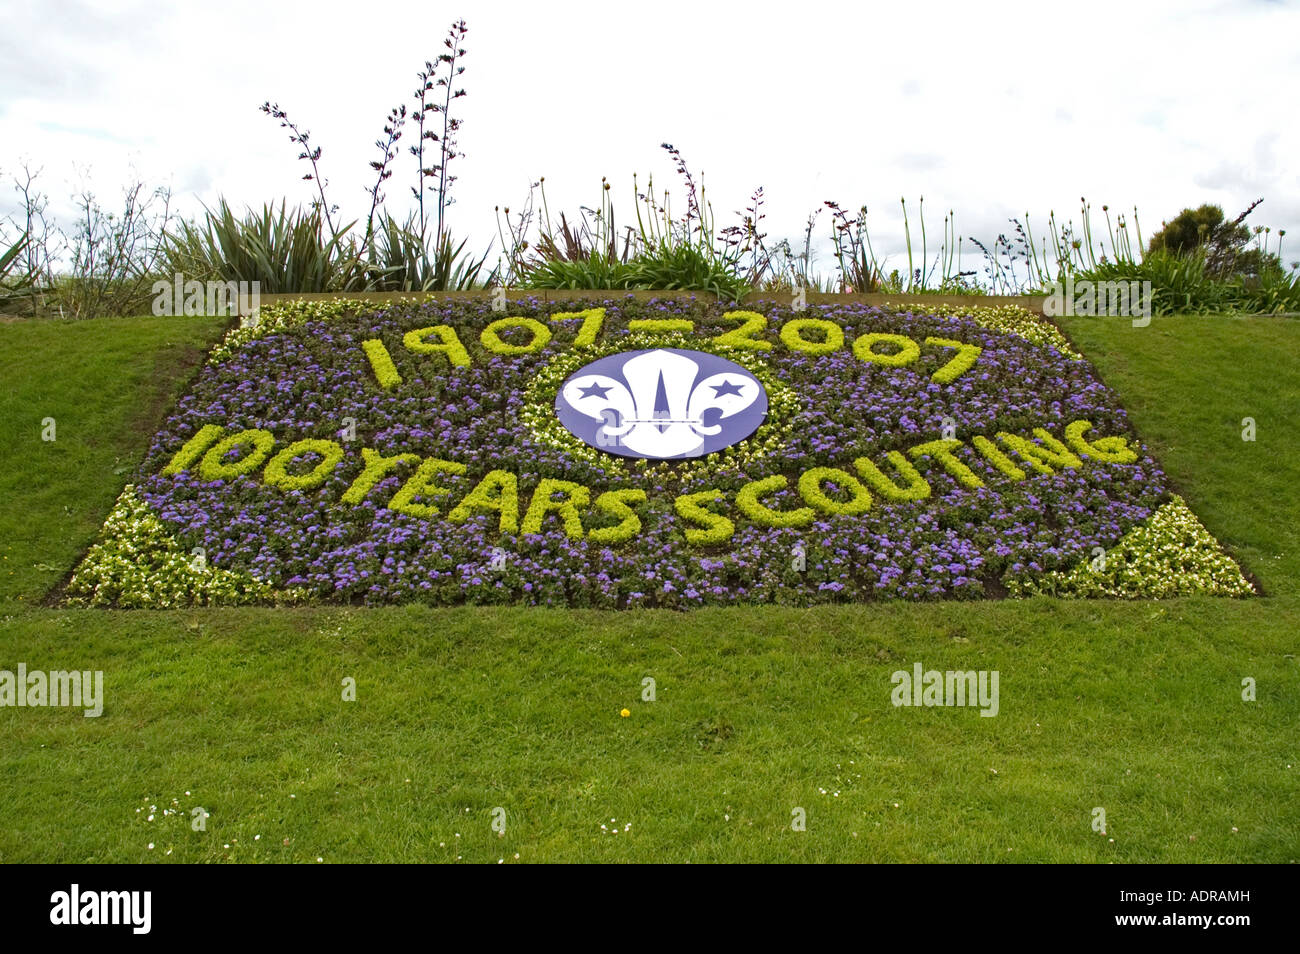 a century of scouting floral display near penzance in cornwall,england - Stock Image